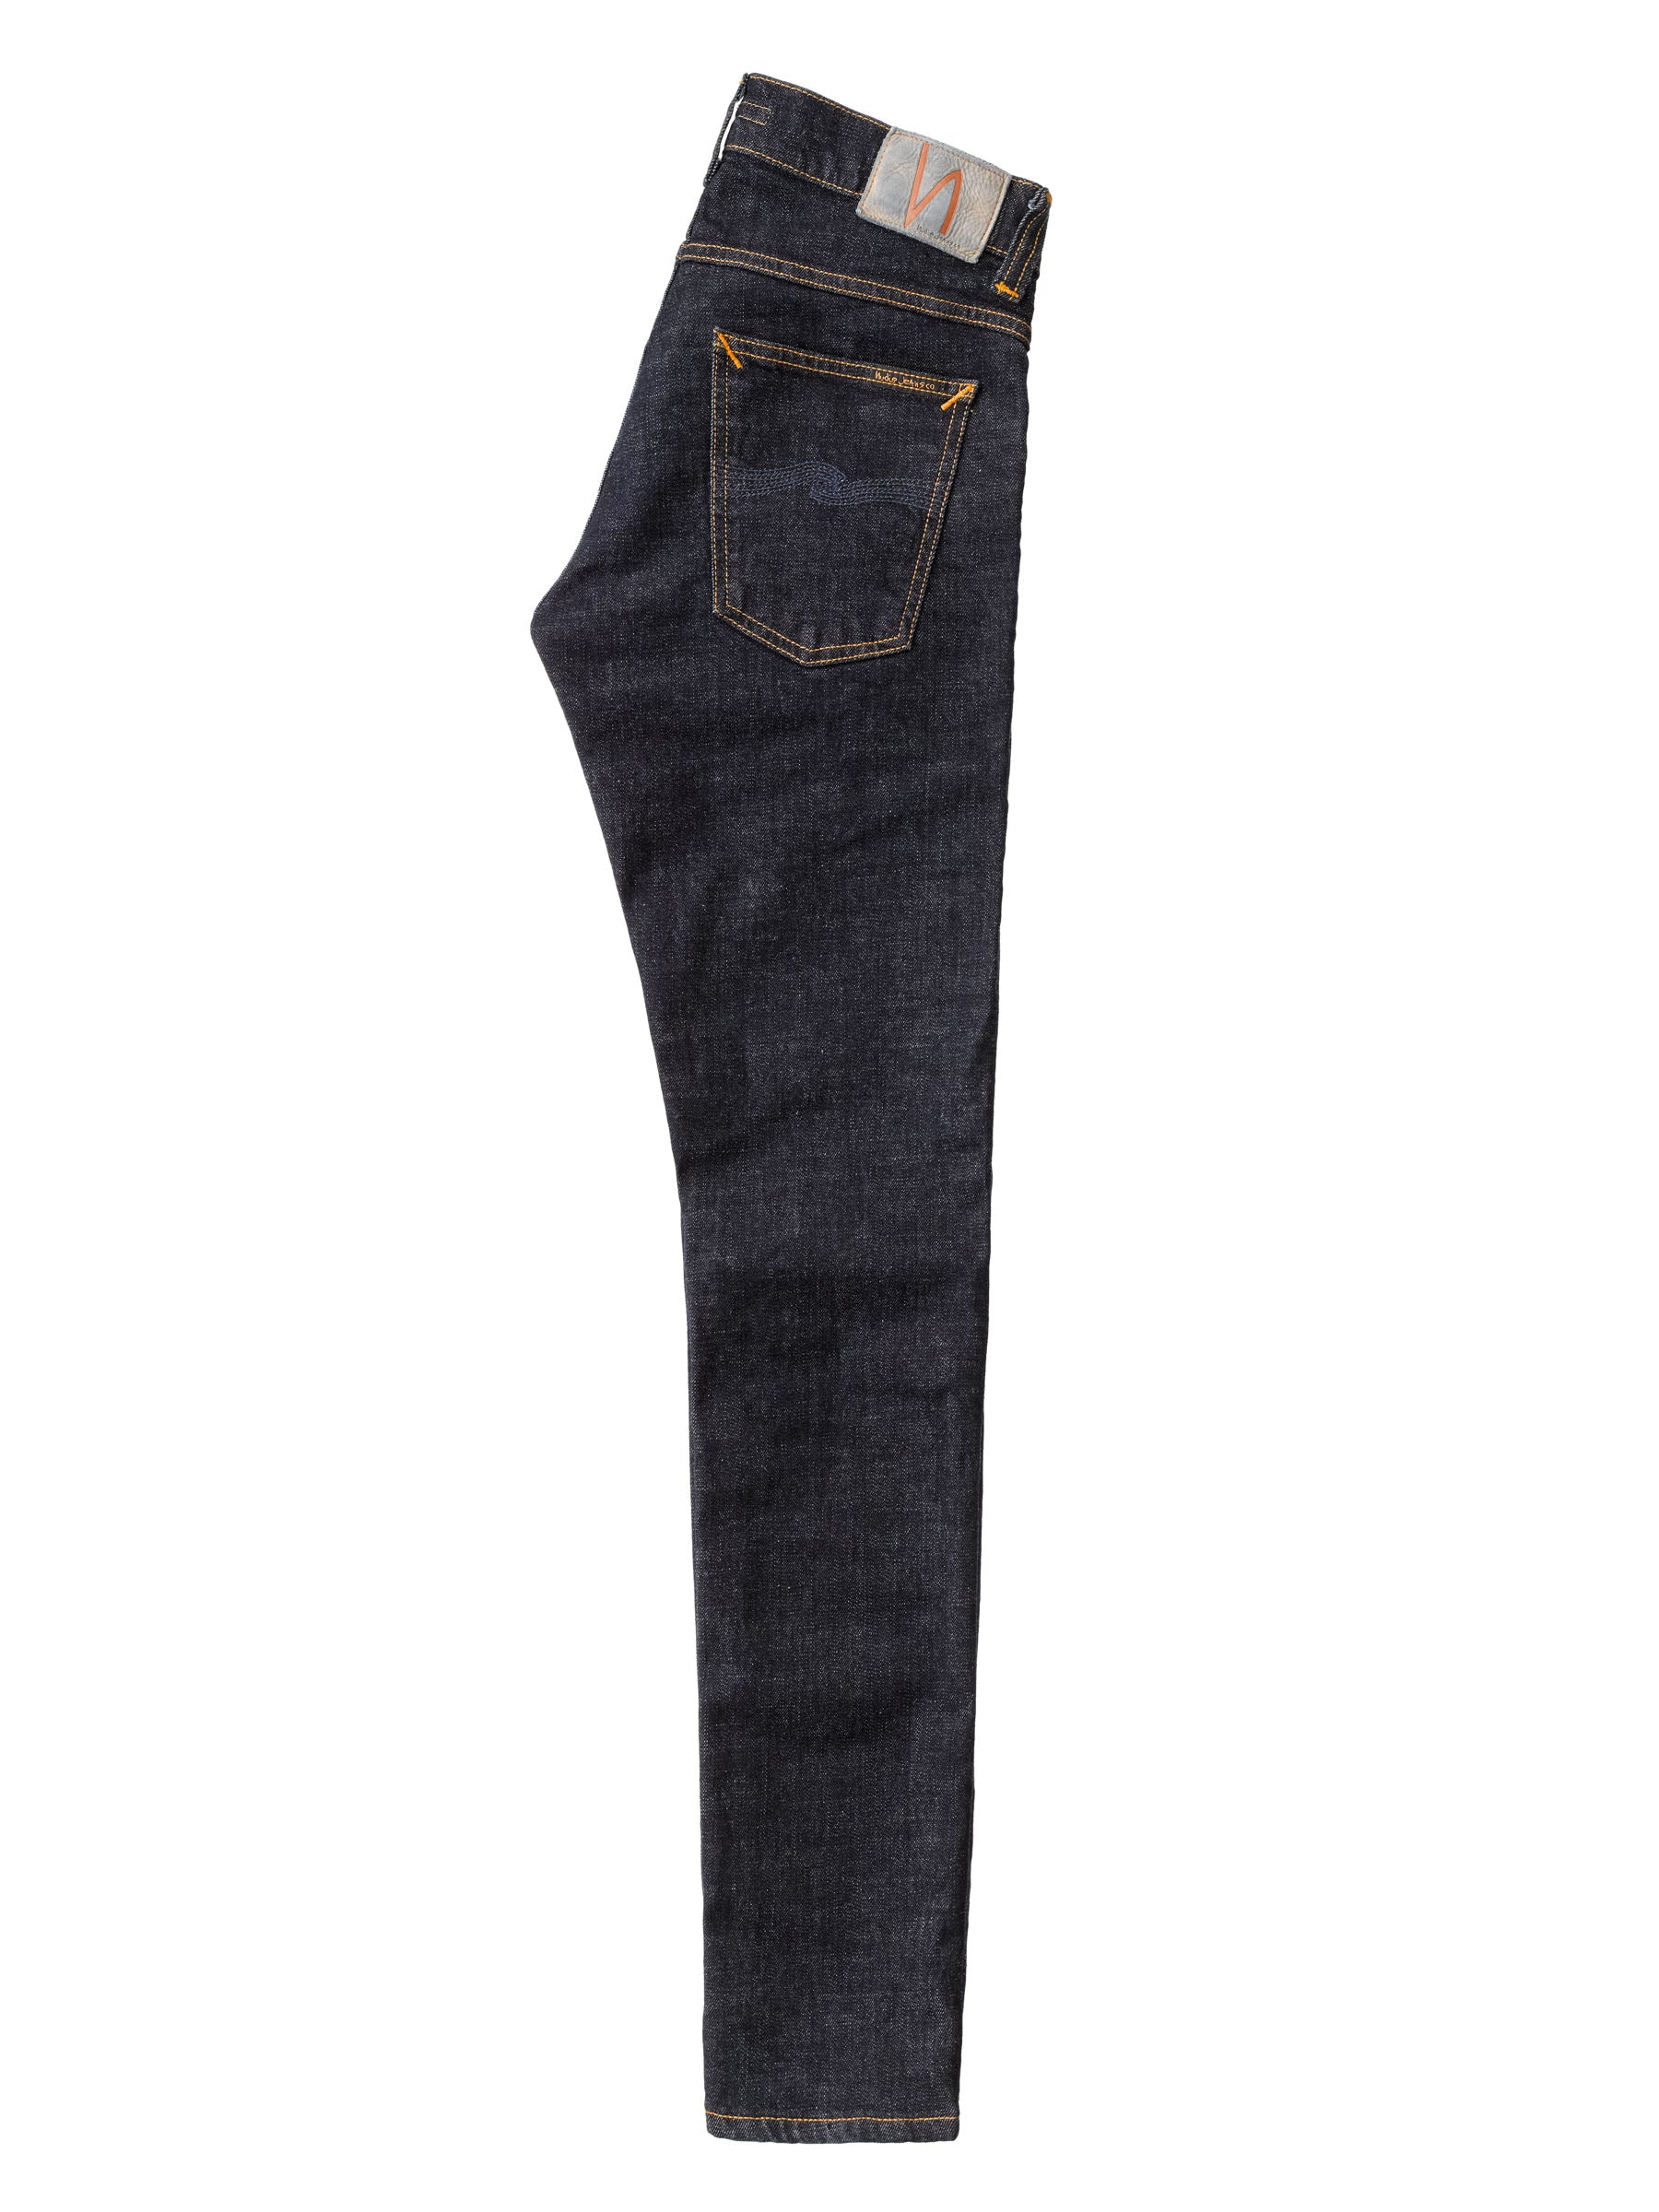 Jean skinny brut coton bio - tight terry - Nudie Jeans num 4